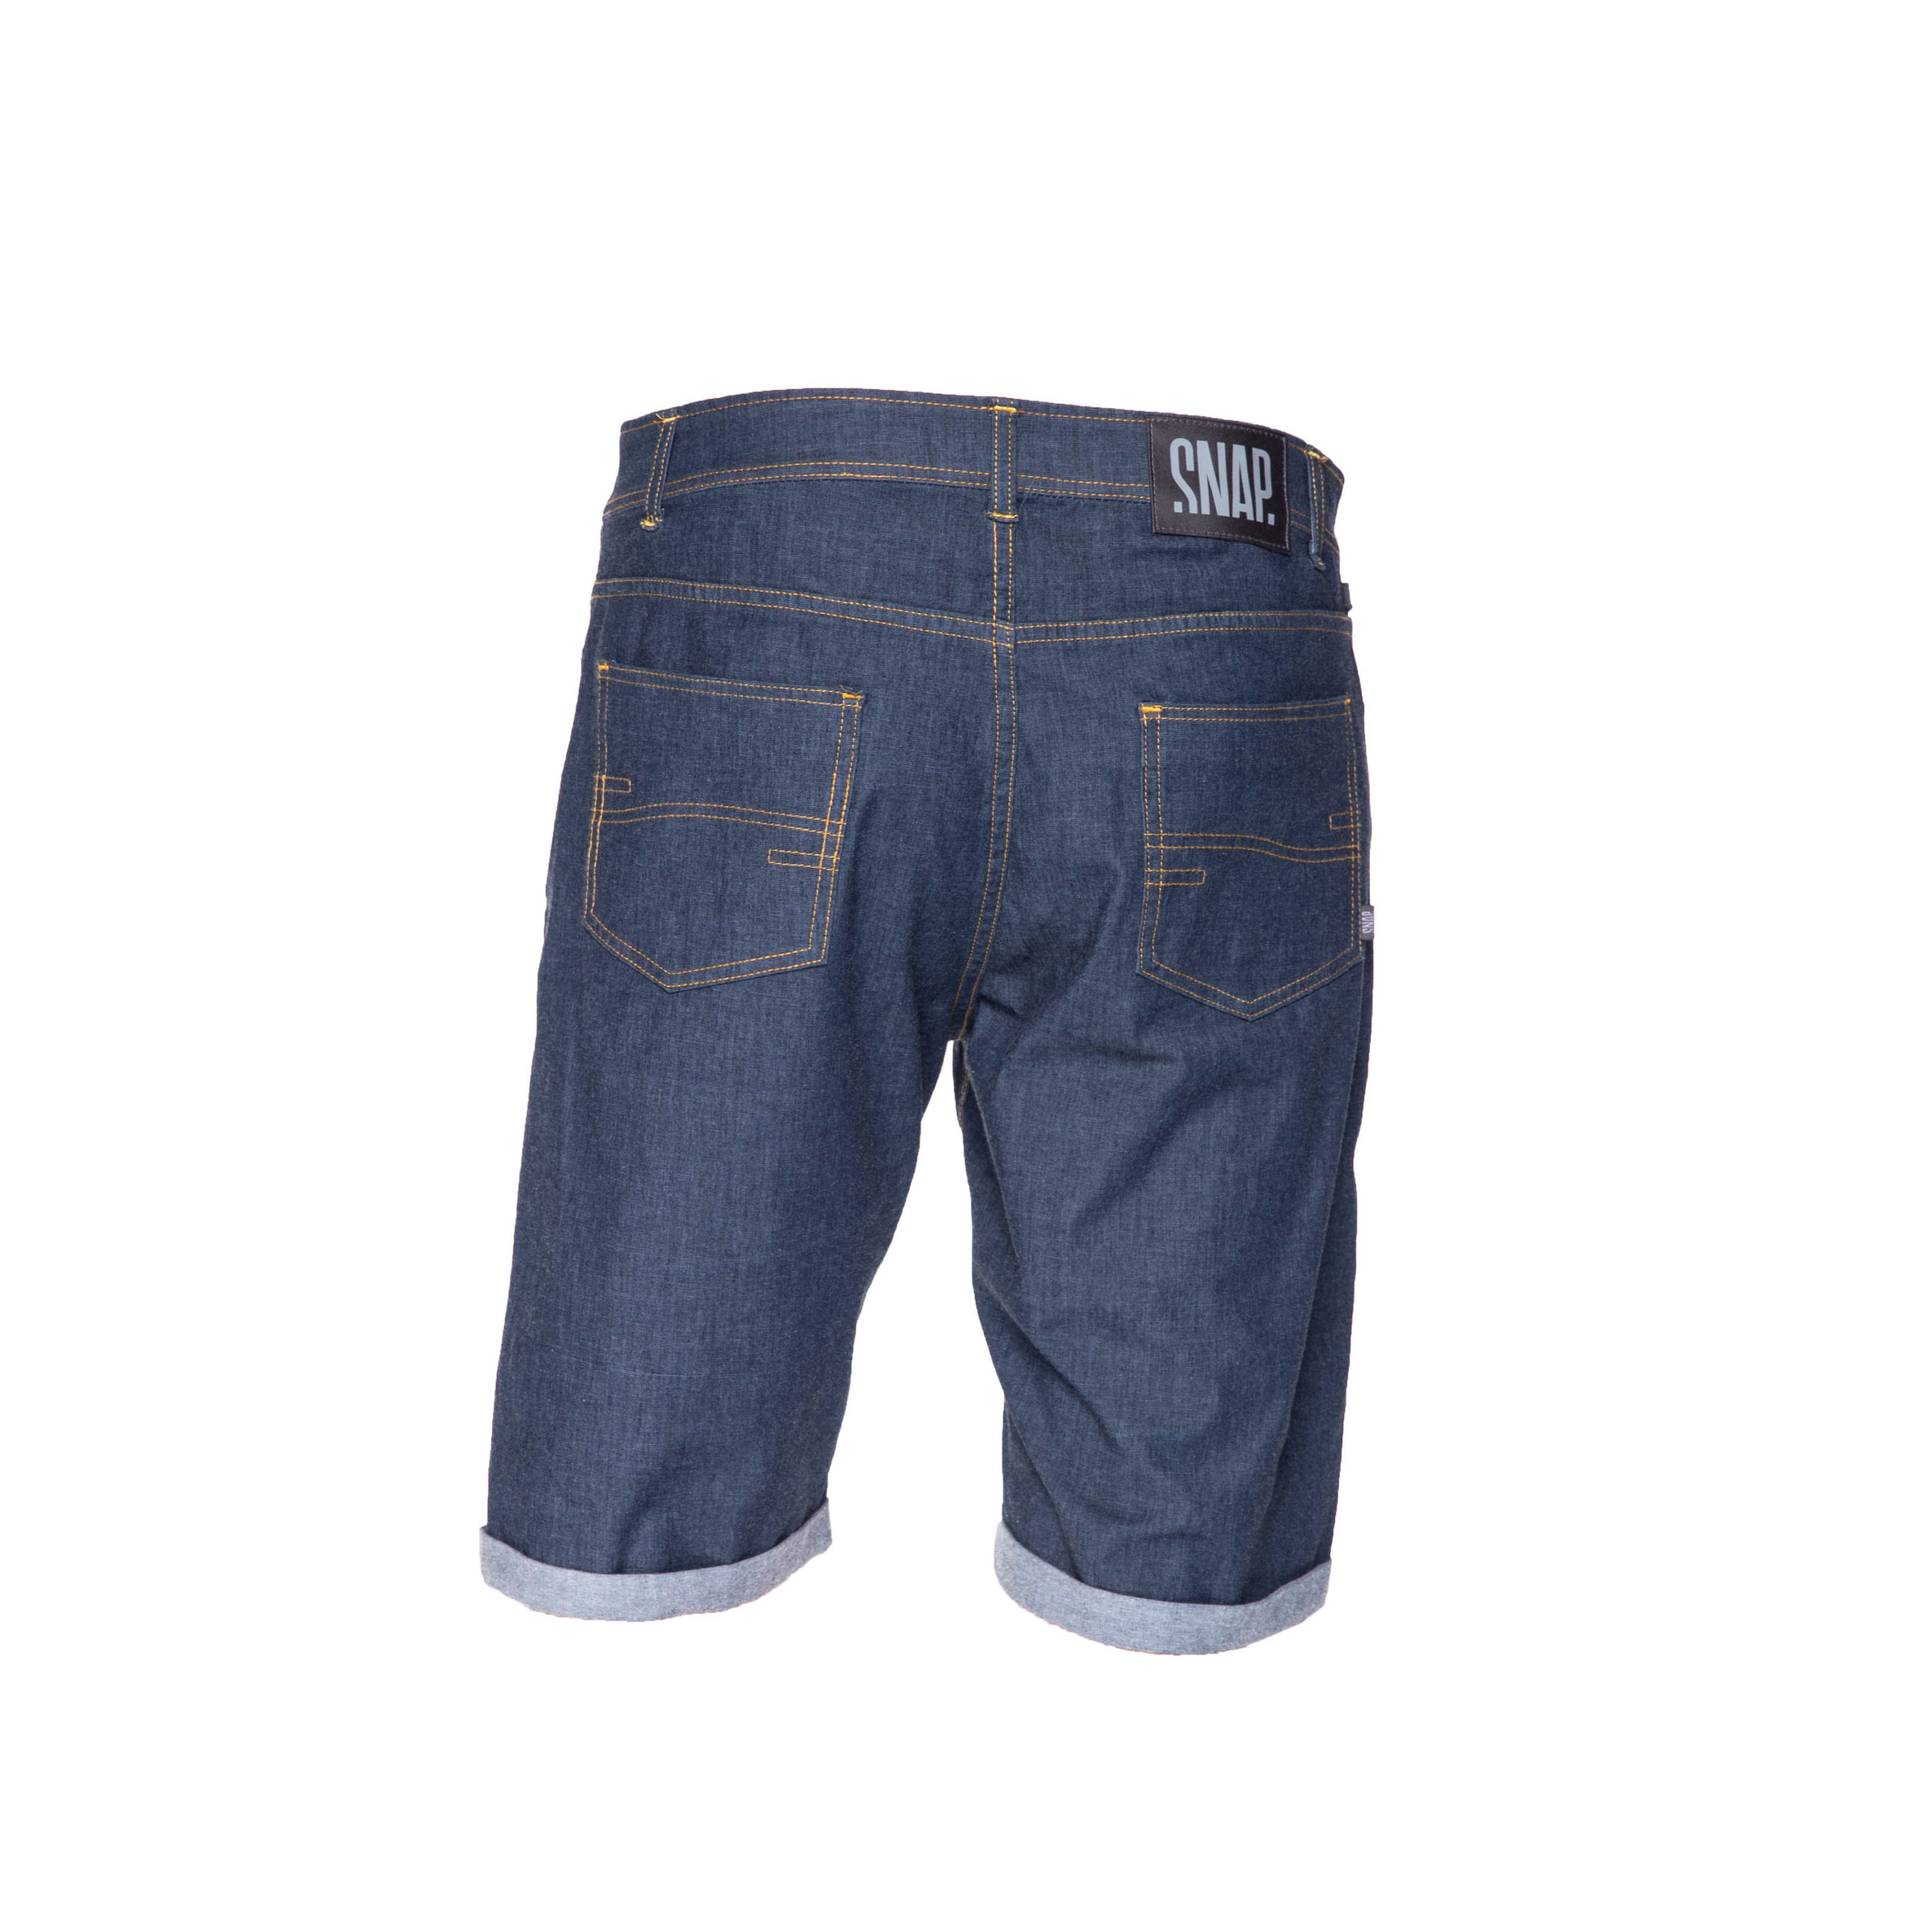 jeans shorts eco-friendly